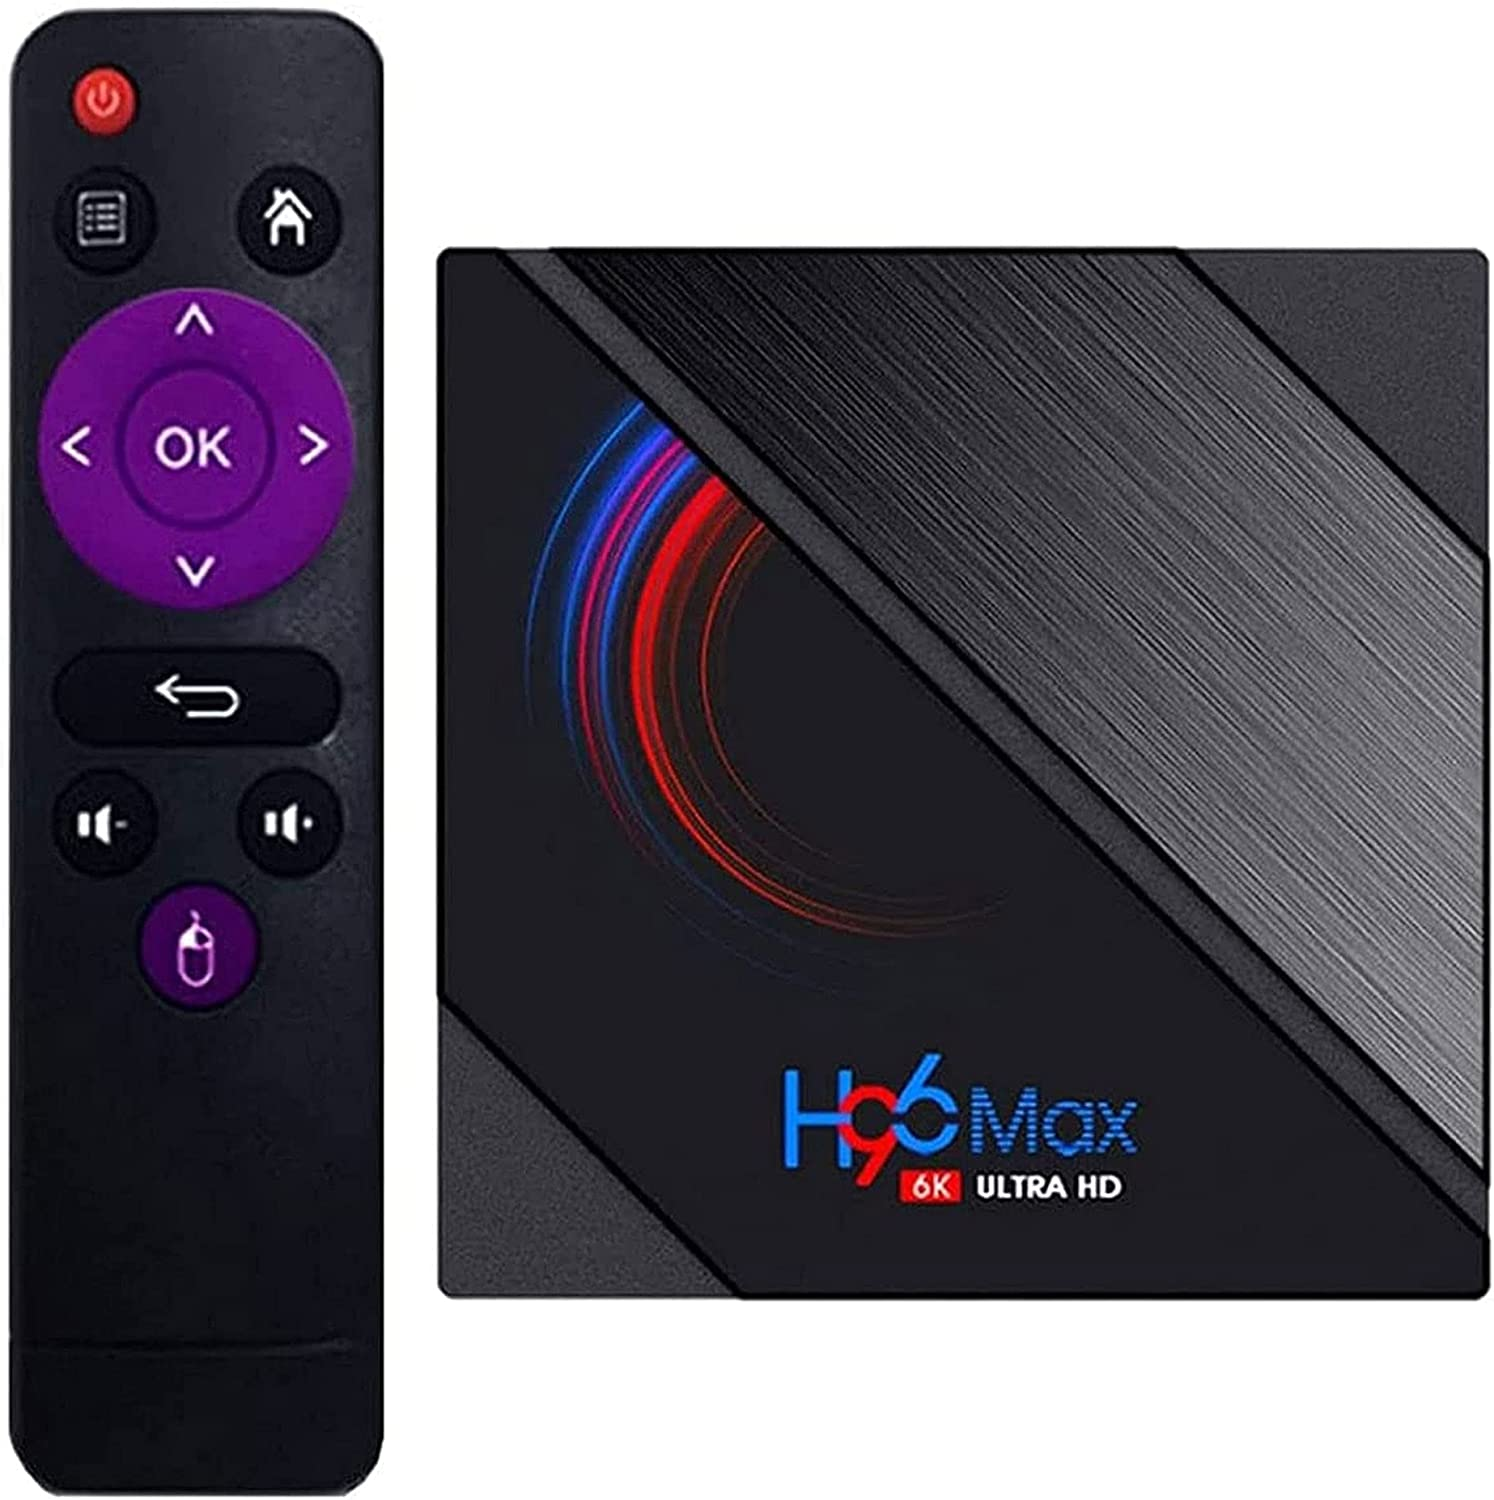 TENJONG H96 Max H616 TV Network Today's only Box 4GB+32GB,6K Dual- Ranking TOP5